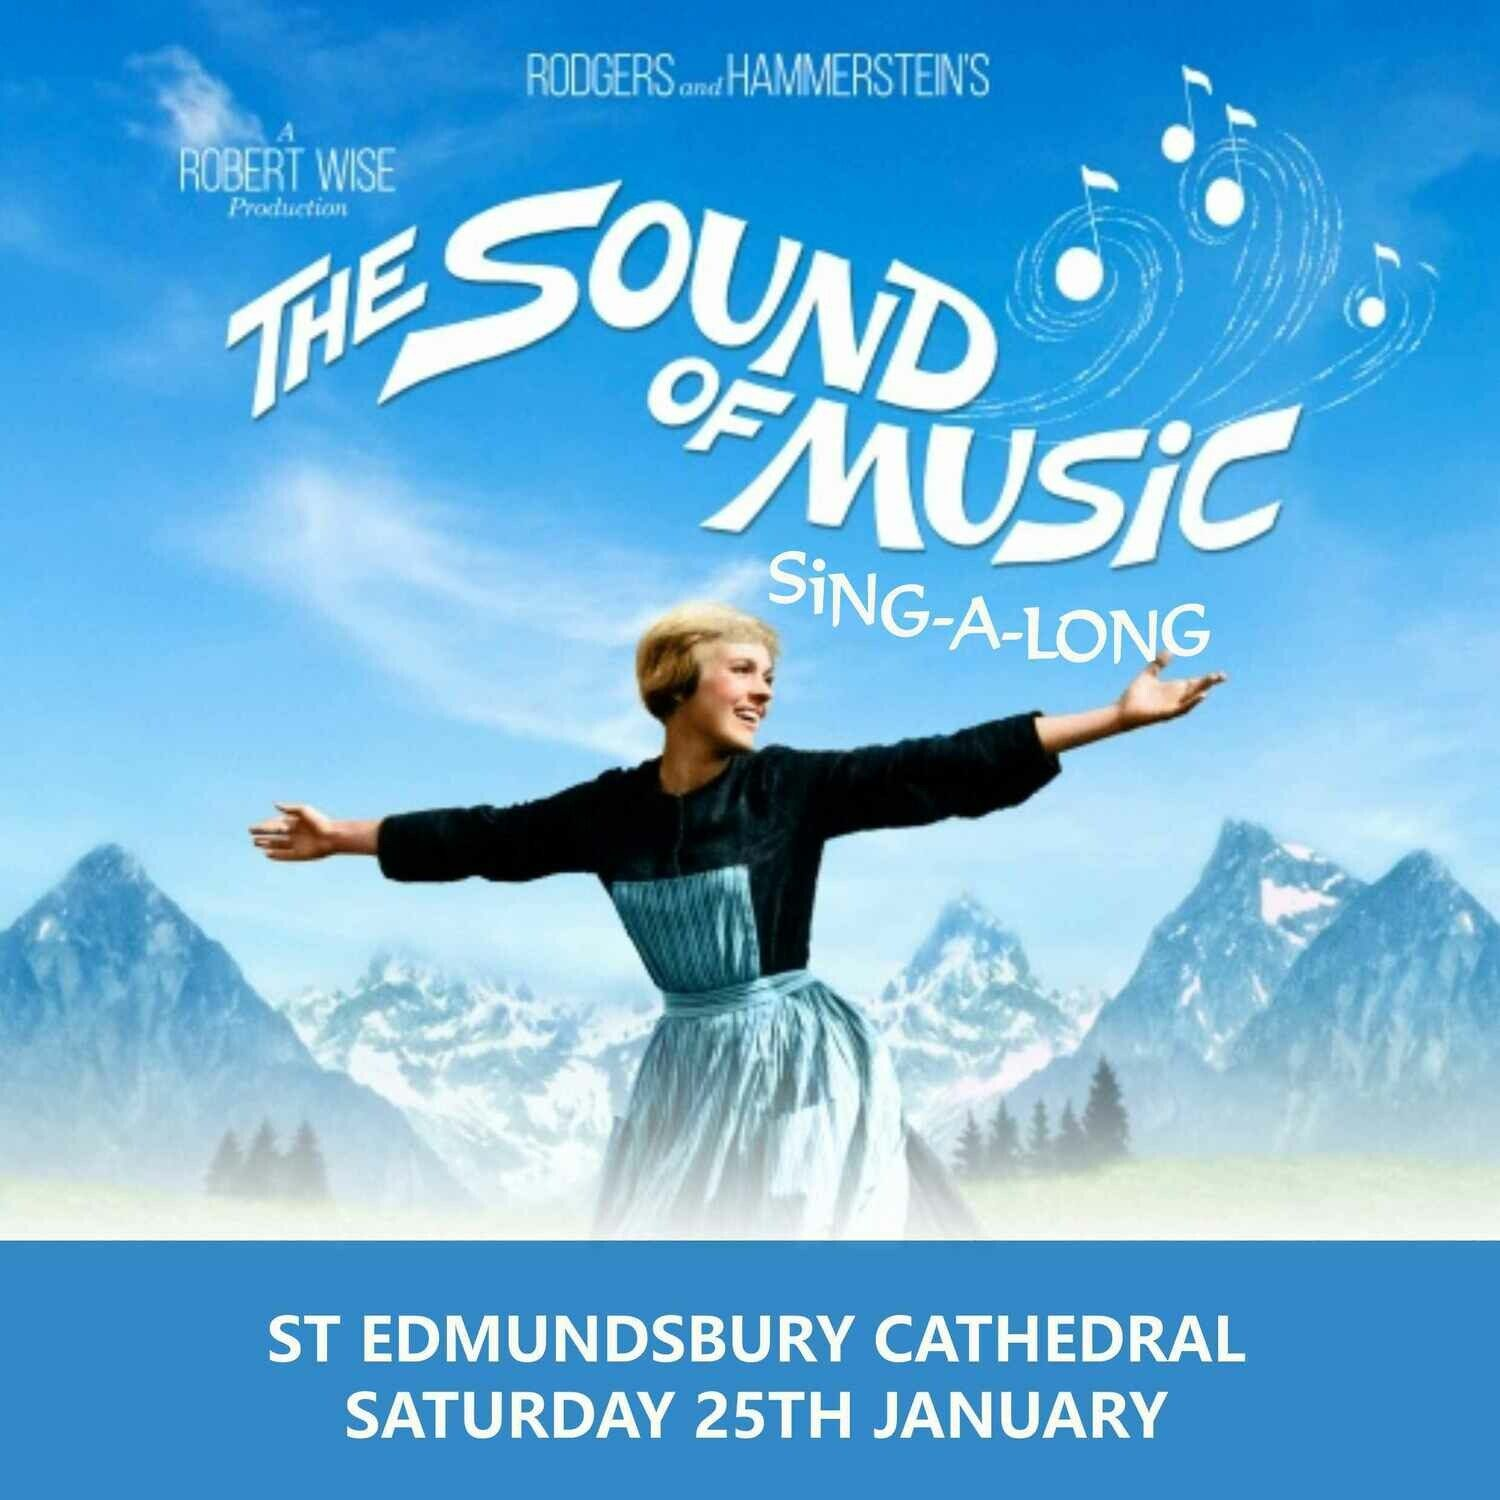 Sound of Music Sing A Long at St Edmundsbury Cathedral